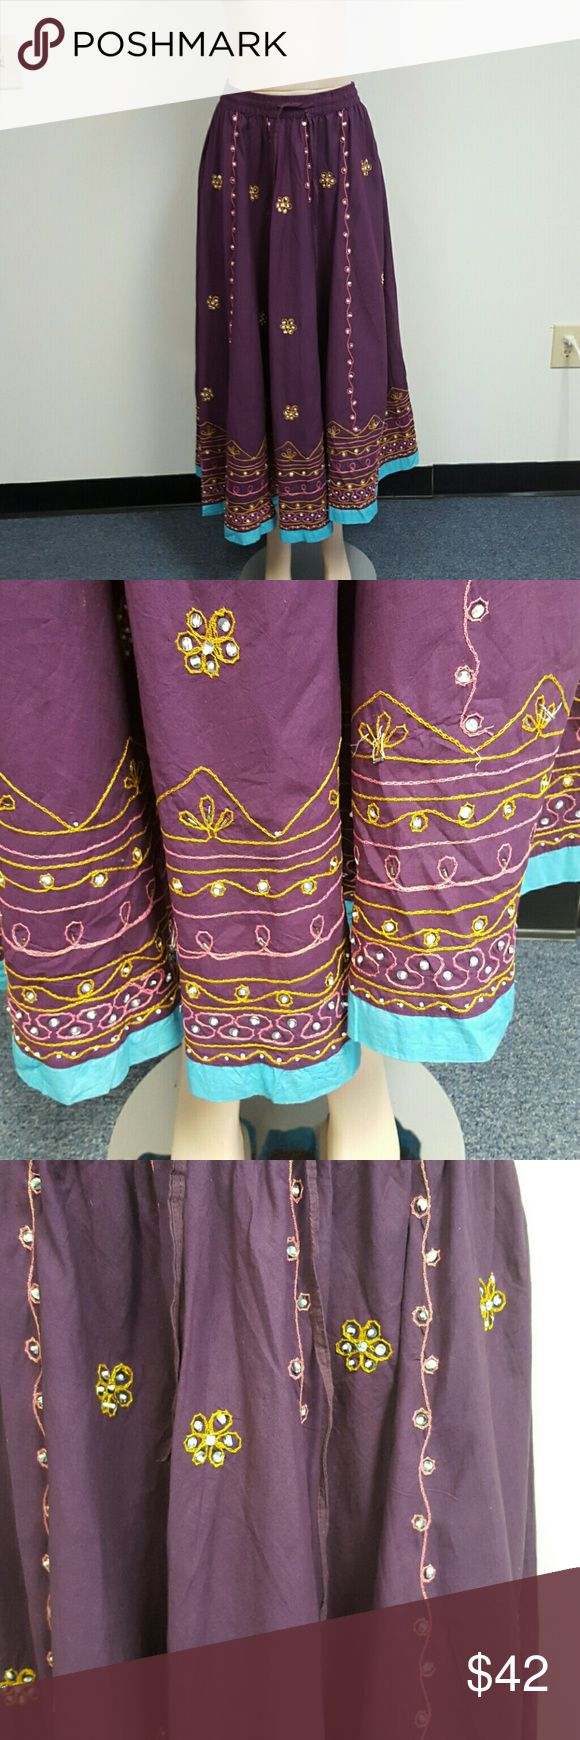 Imported BOHO embroidered skirt. Made in India. Imported BOHO embroidered skirt. Made in India. Purple with gold/pink/turquoise embroidery Raja Skirts